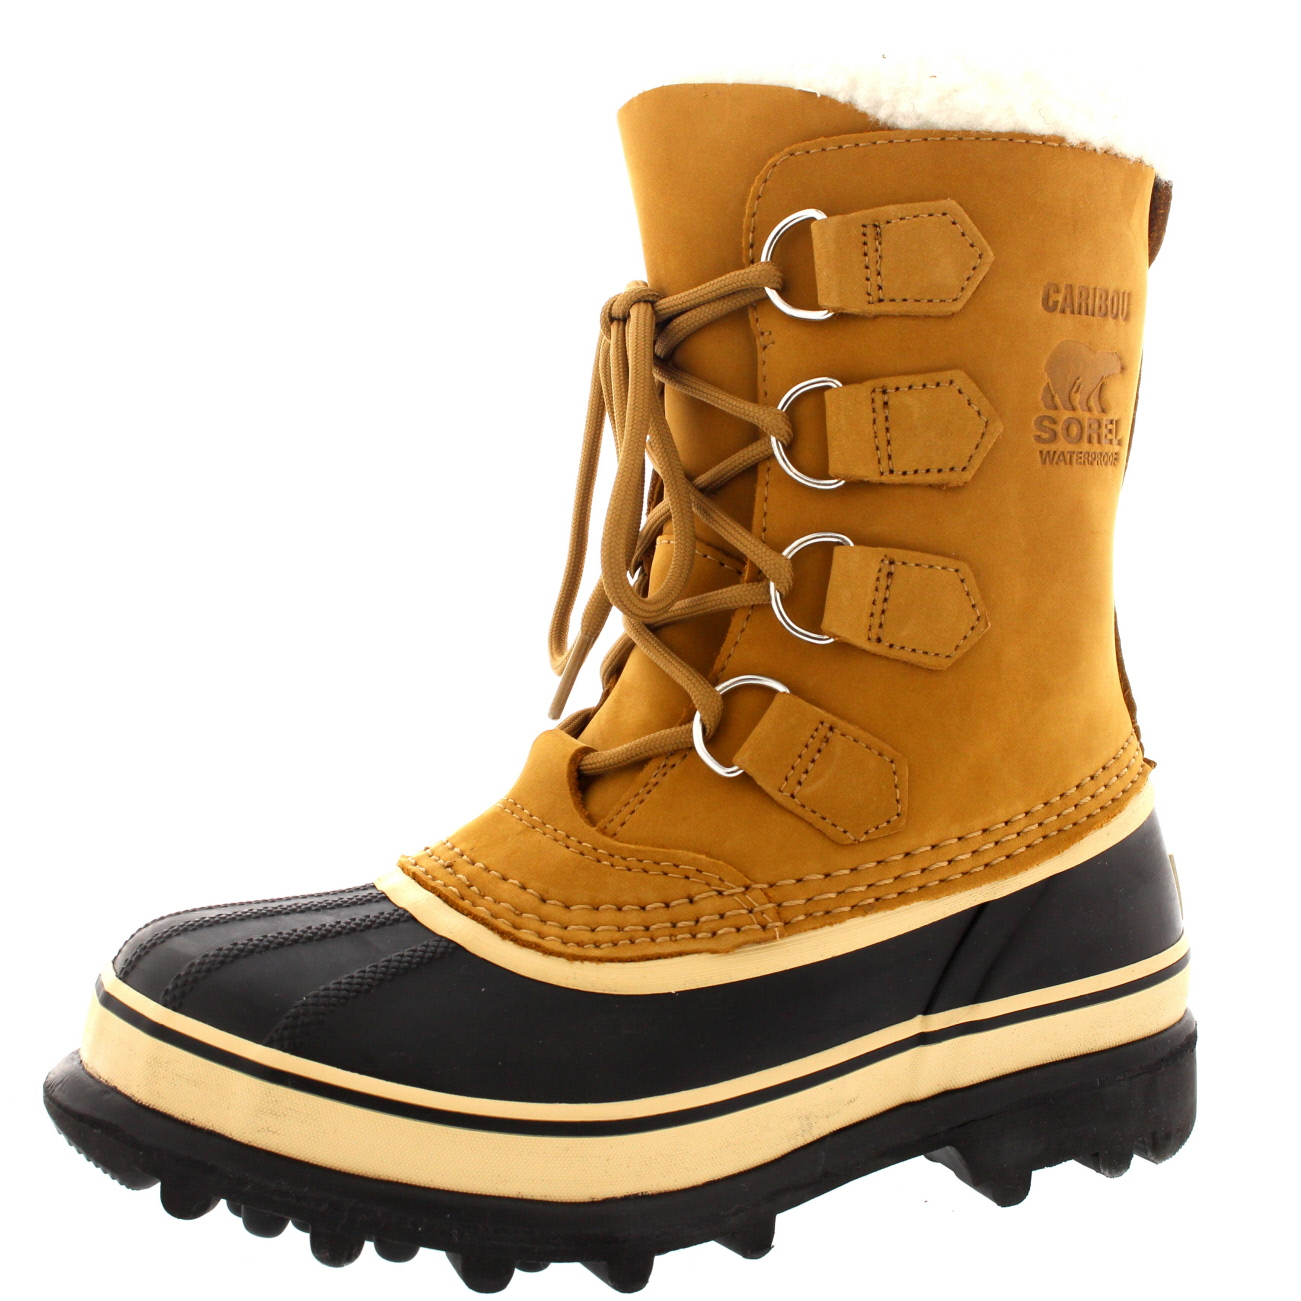 Sorel Caribou Mid-Calf Boots sale visit buy cheap store 4702MMKRq